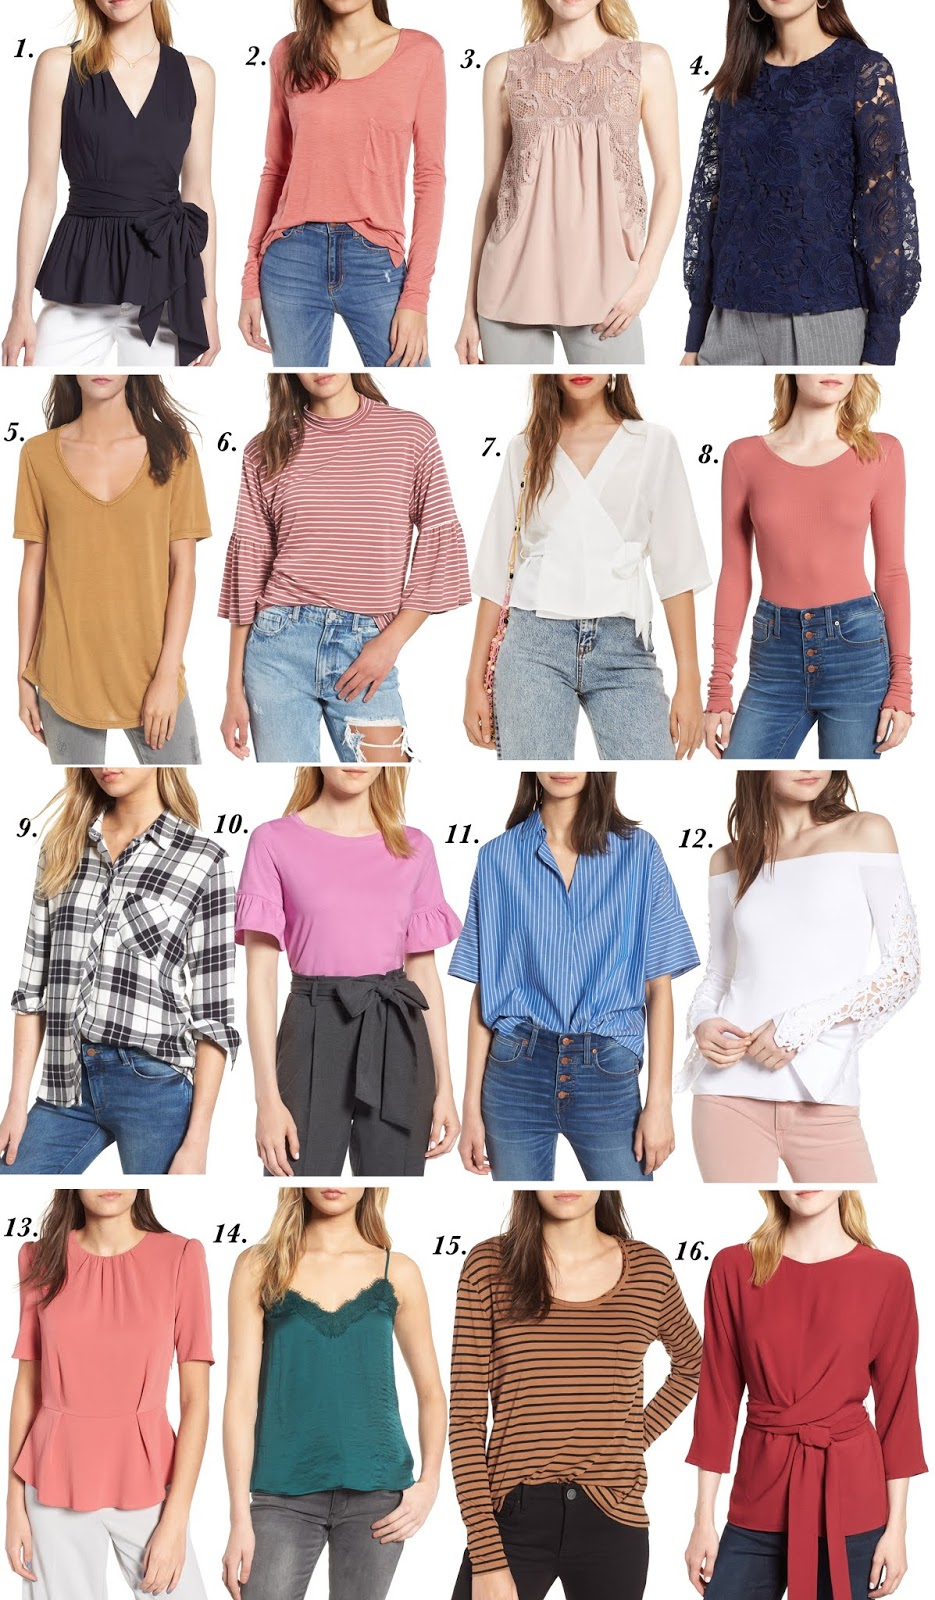 2018 Nordstrom Anniversary Sale: Tops - Something Delightful Blog